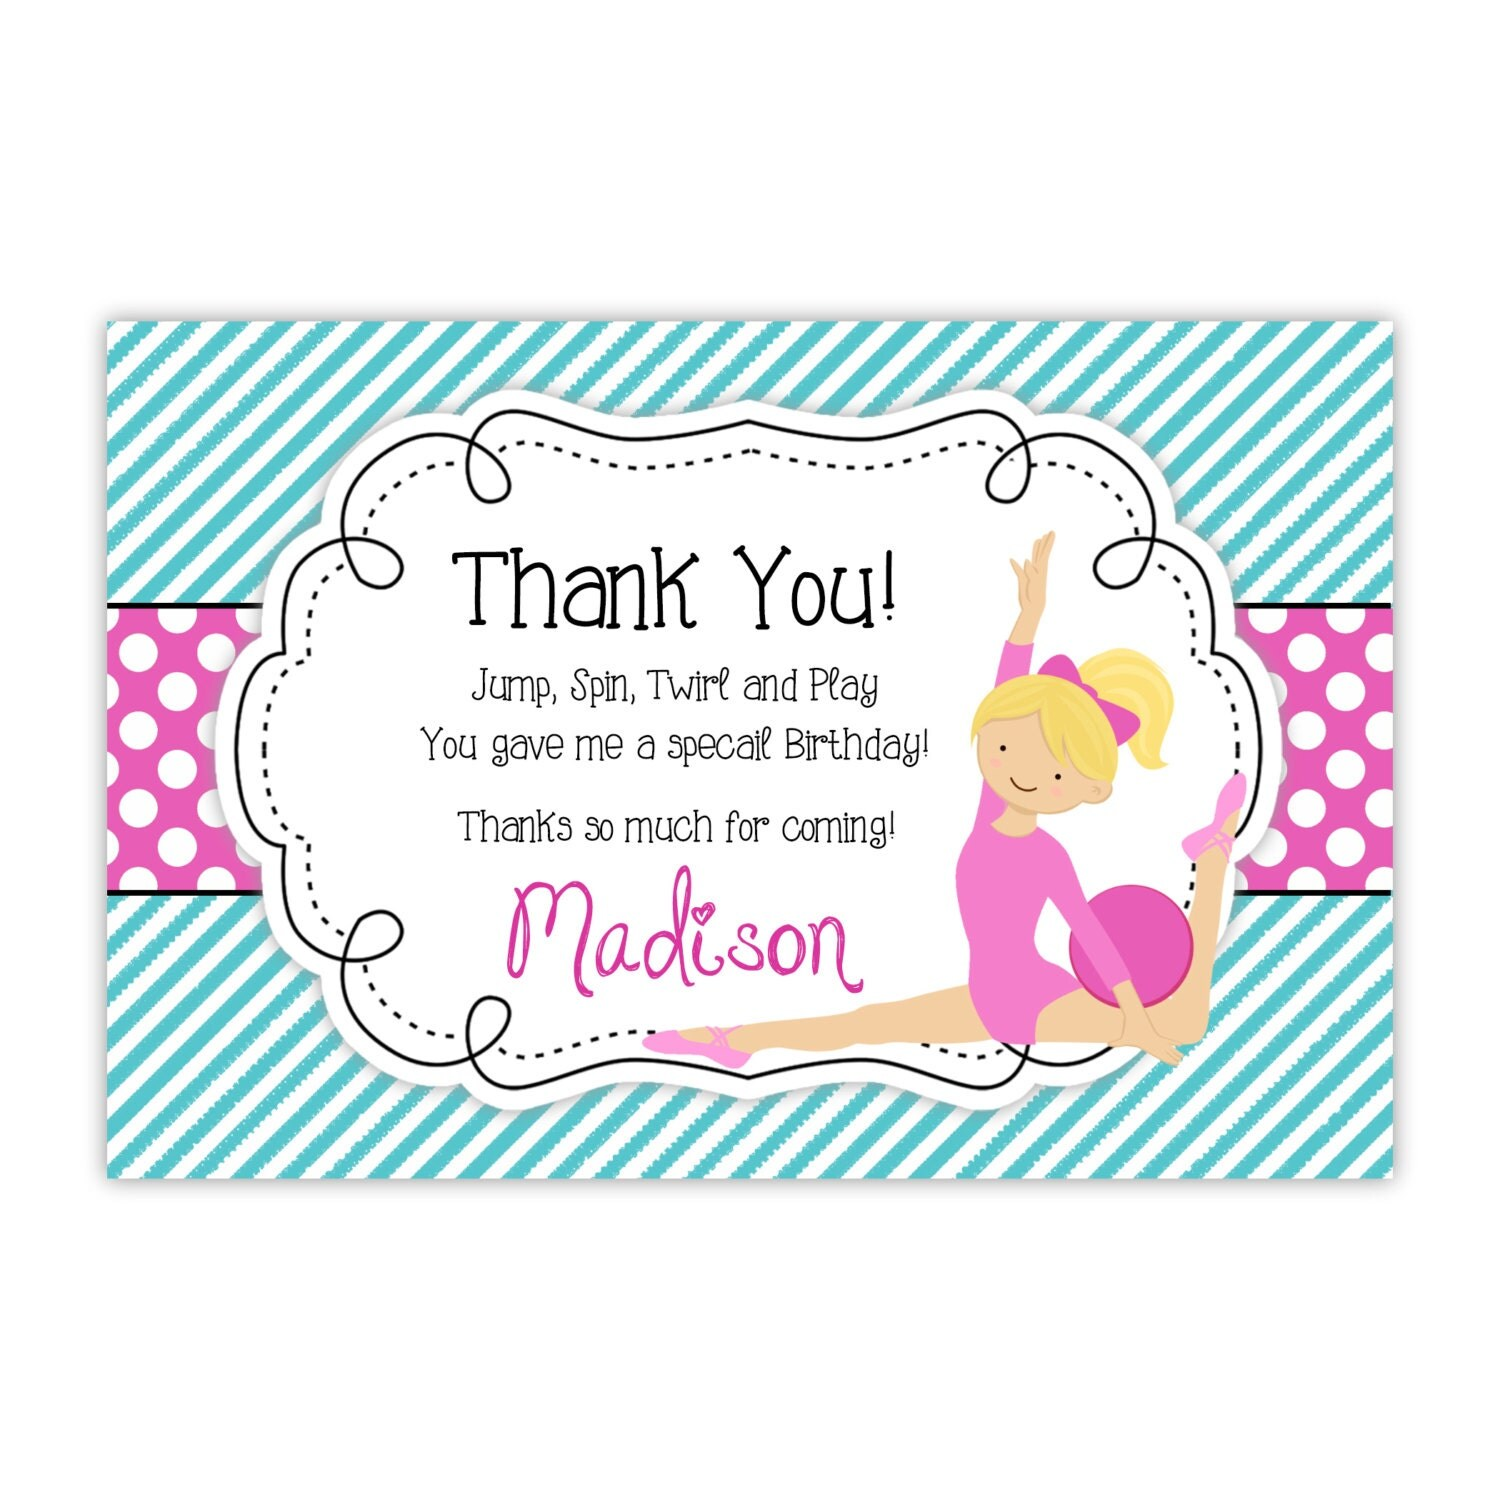 Gymnastics Thank You Card Teal Turquoise Stripes Pink Dots